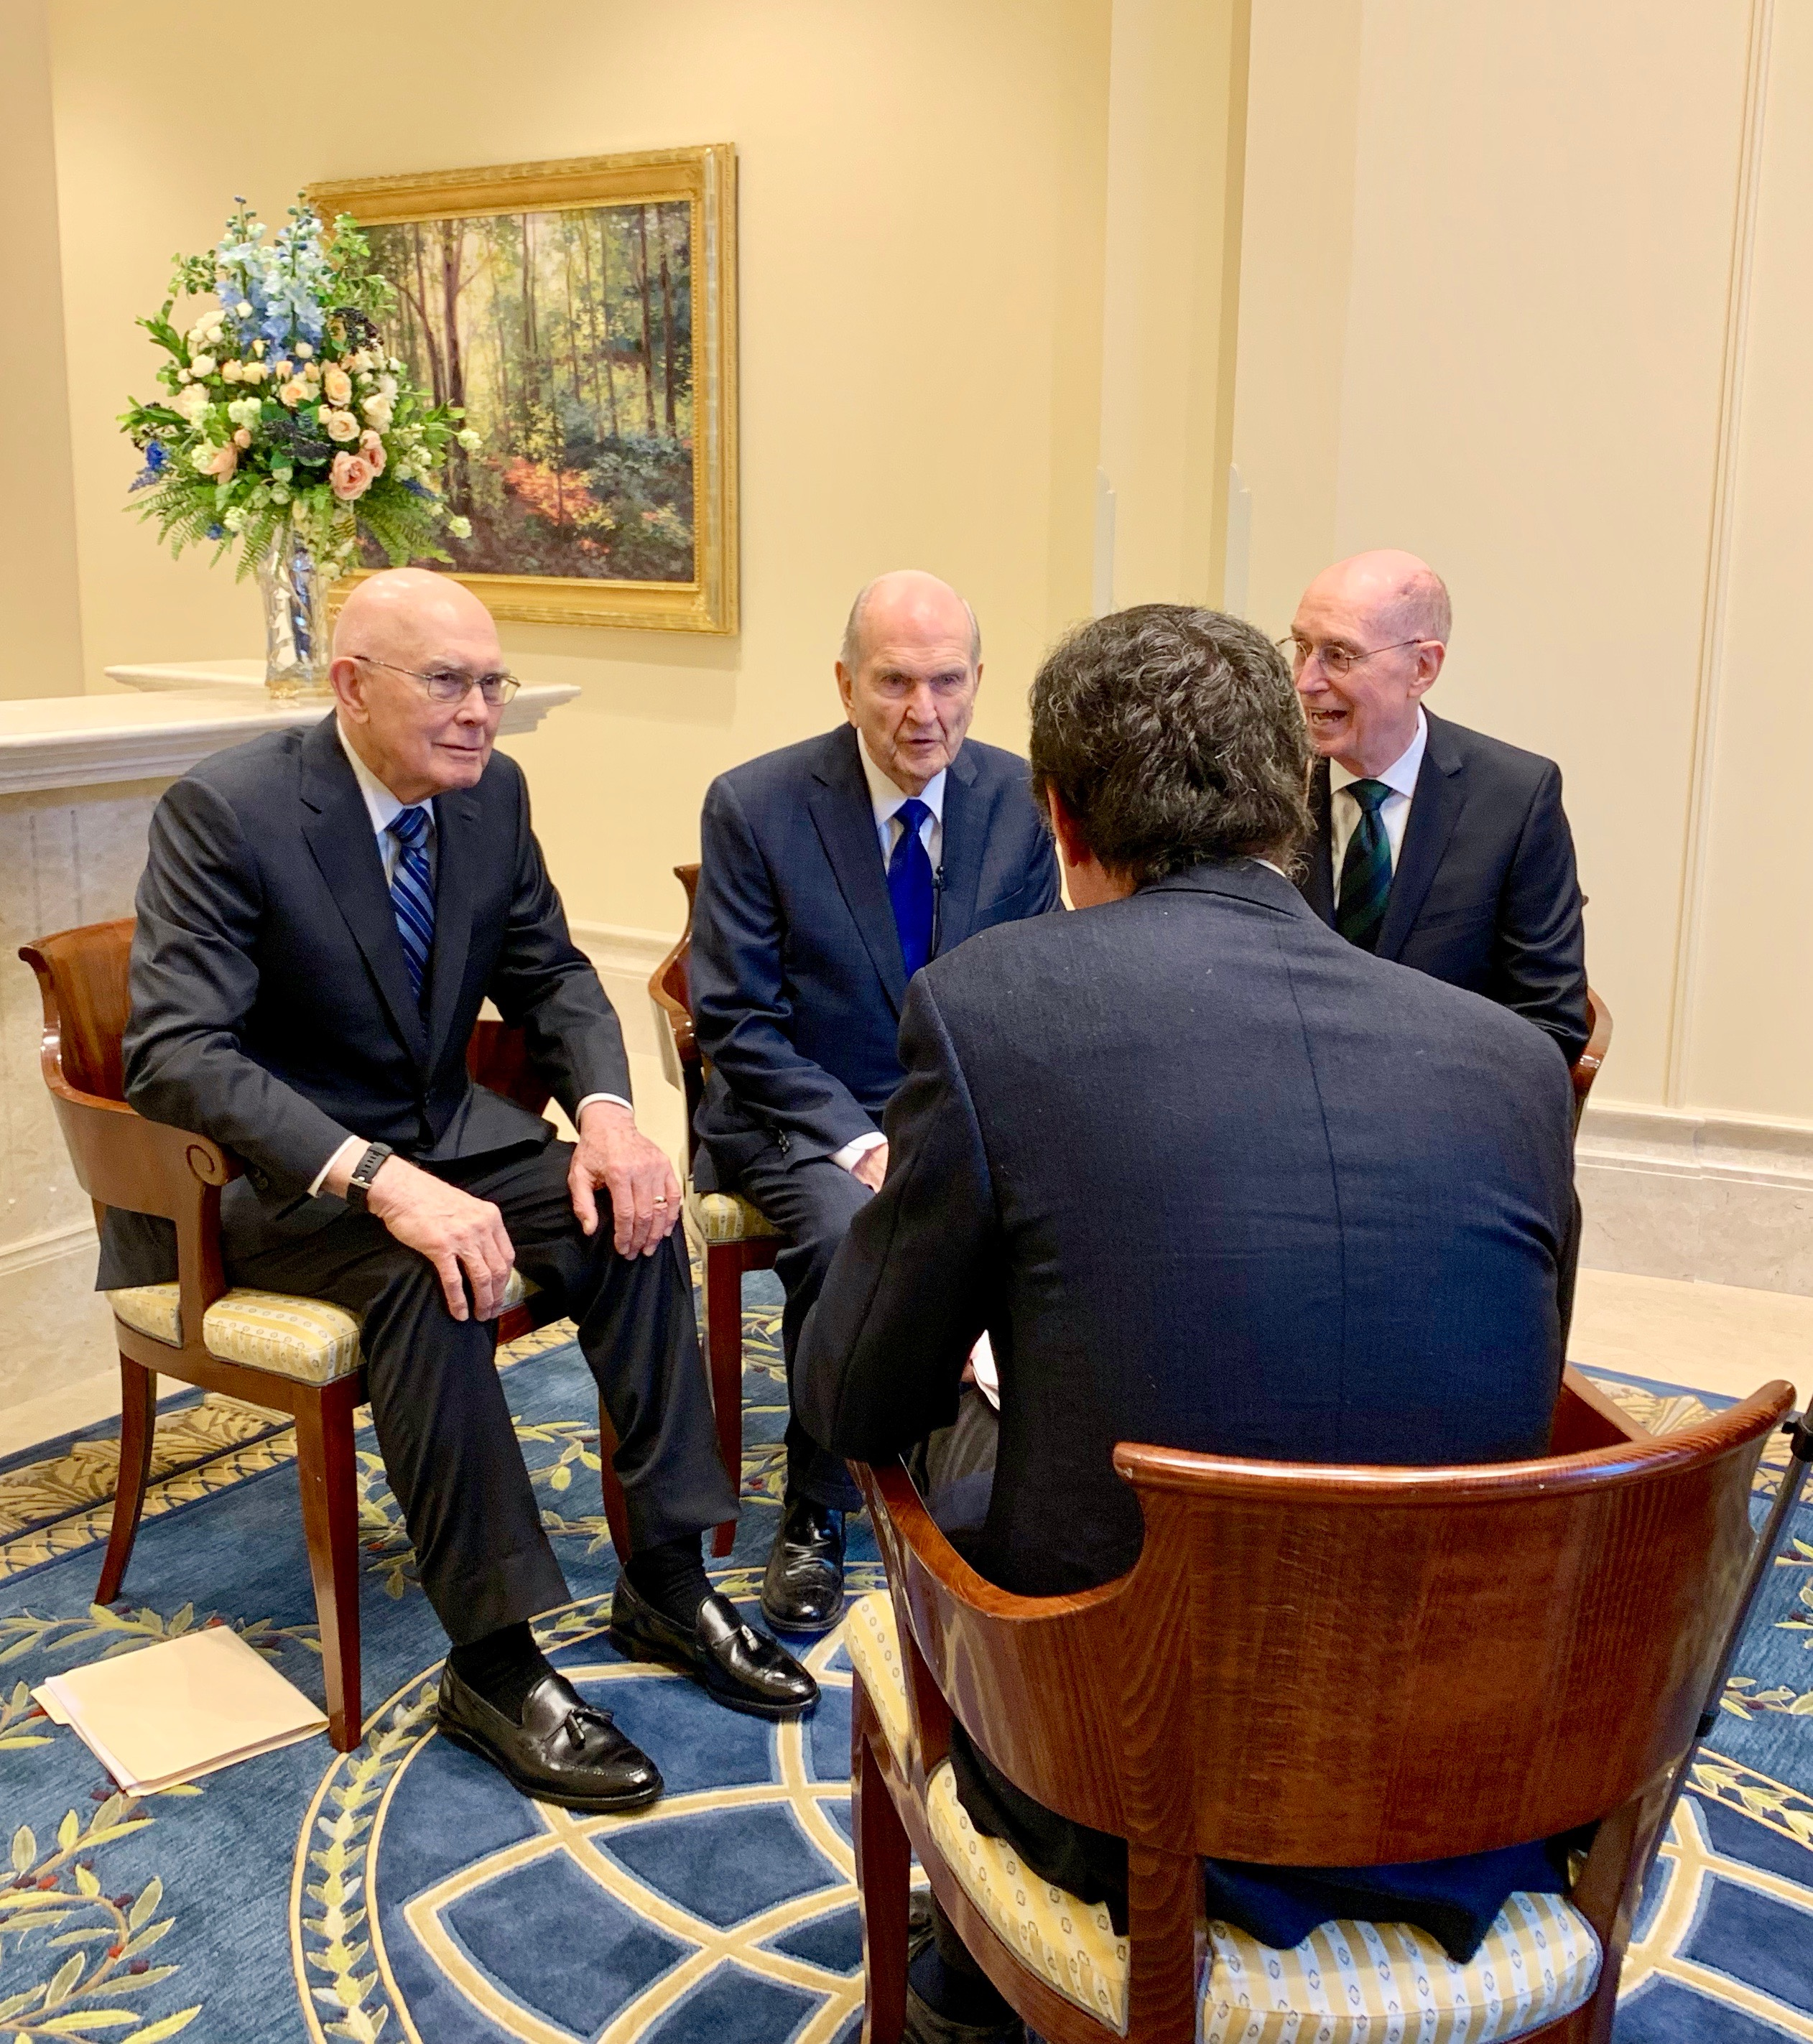 President Dallin H. Oaks, President Russell M. Nelson and President Henry B. Eyring talk with La Stampa correspondent Paolo Mastrolilli during the reporter's exclusive interview of the First Presidency of The Church of Jesus Christ of Latter-day Saints in the Rome Italy Temple on Monday, March 11, 2019.